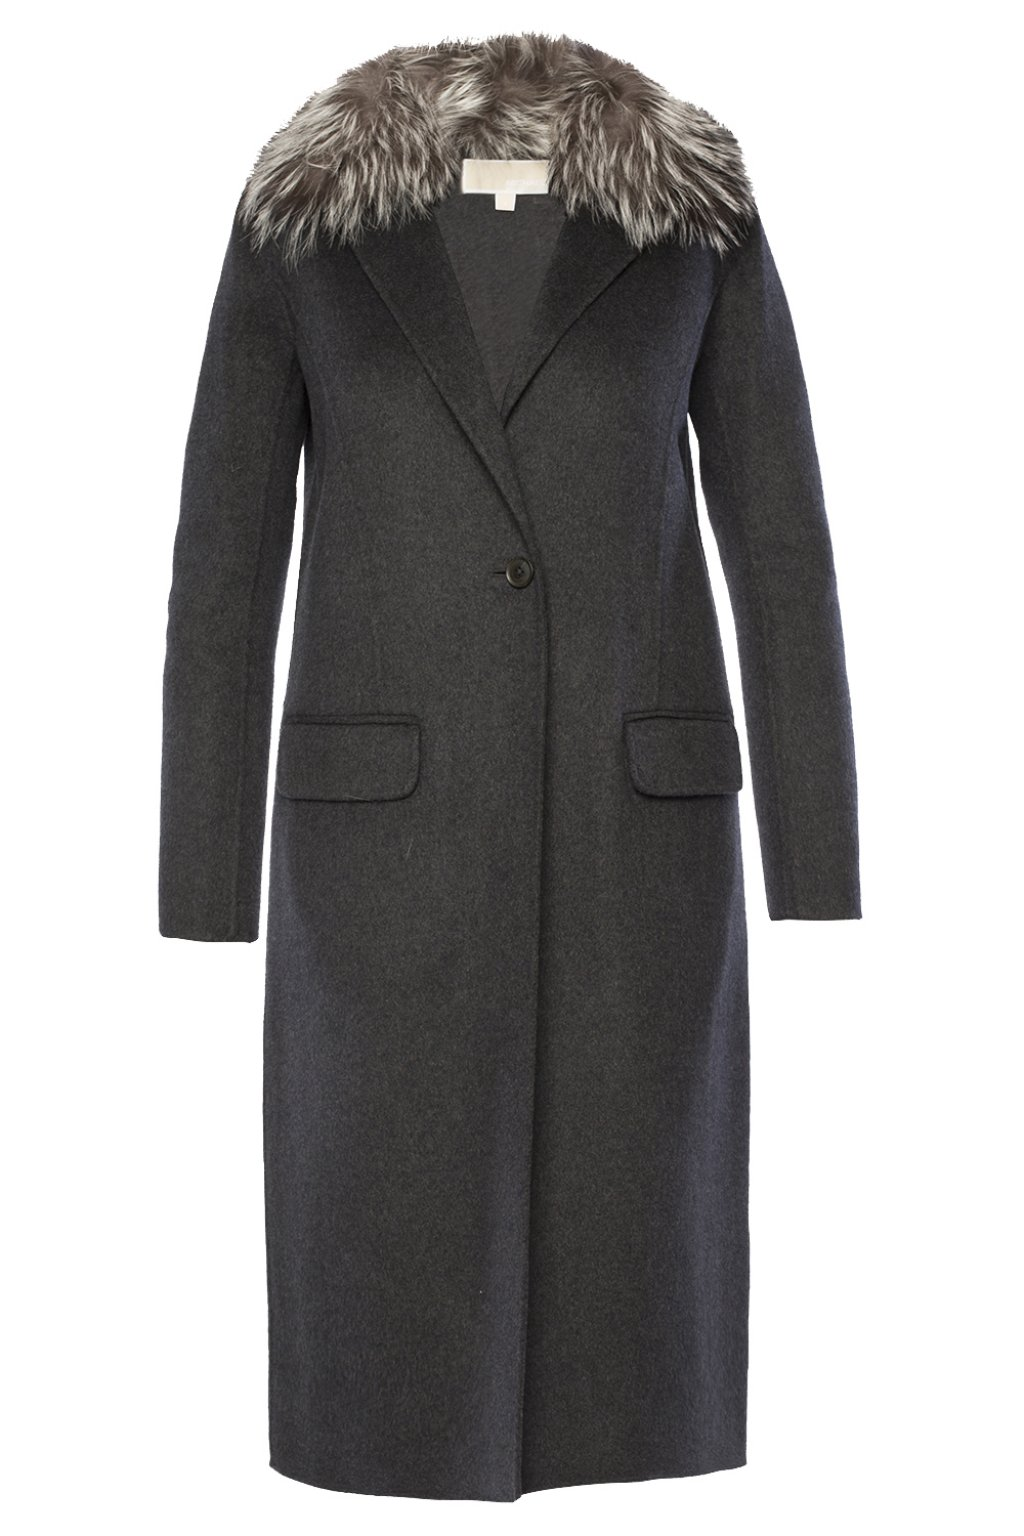 Michael Michael Kors Fur collar coat